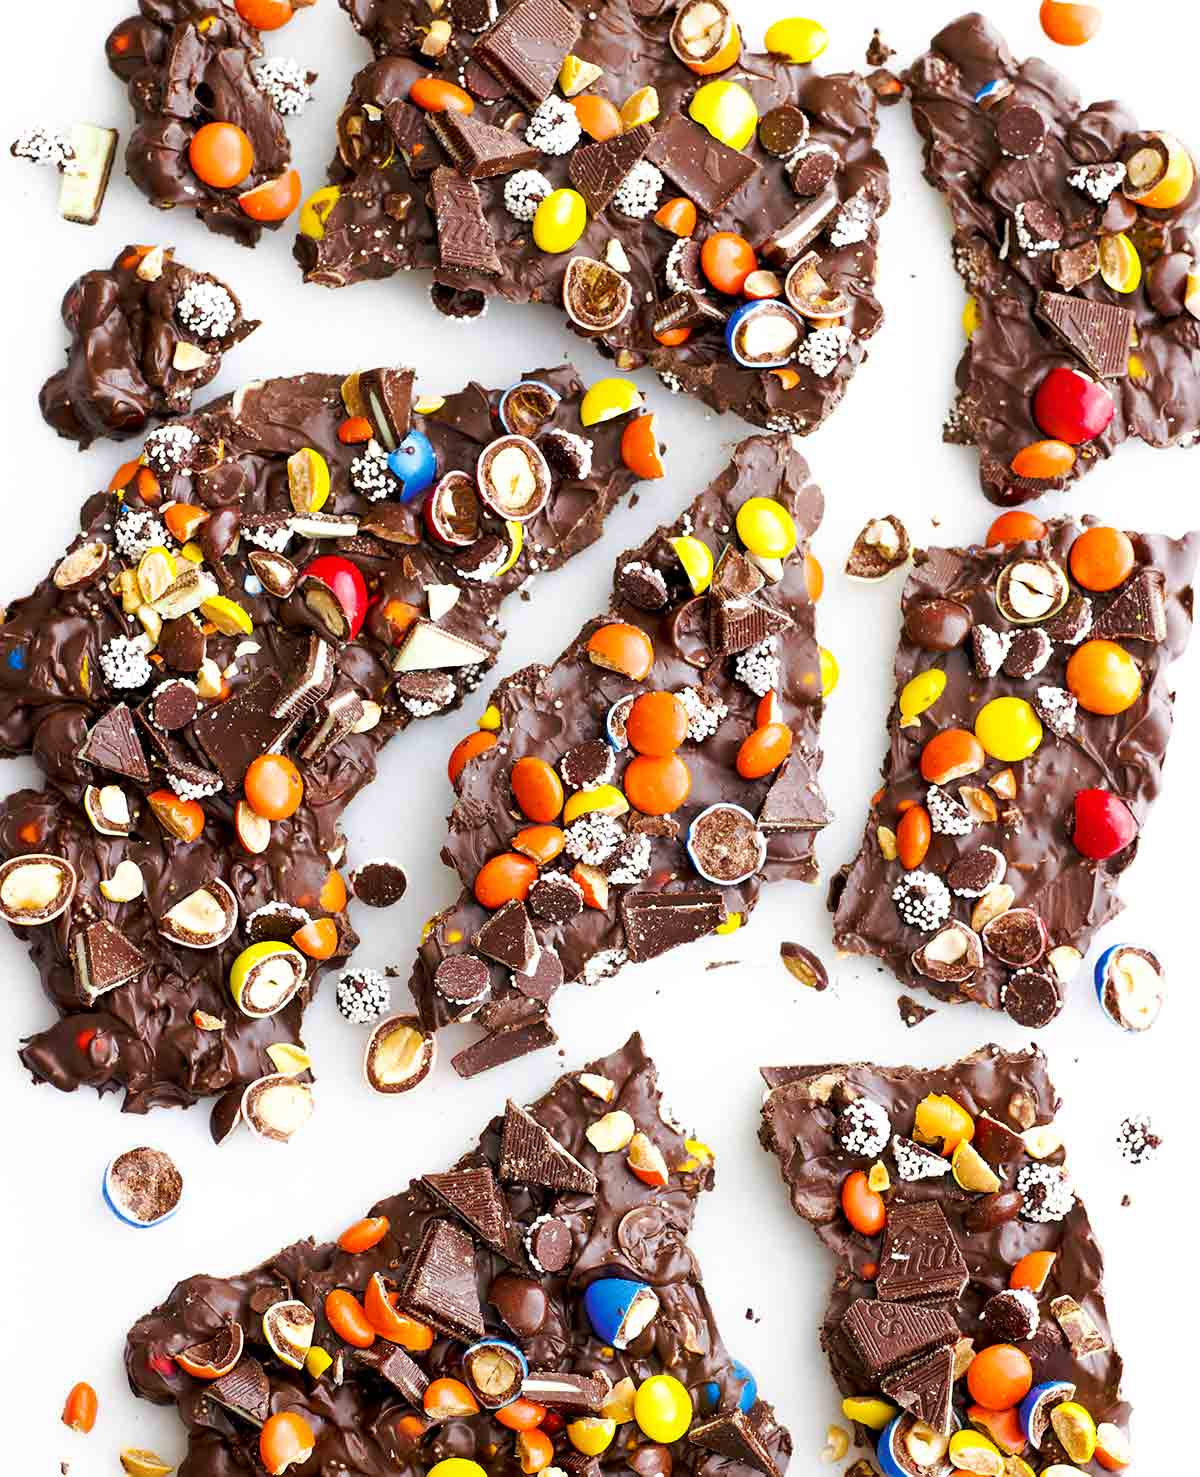 Broken pieces of leftover Halloween candy bark.